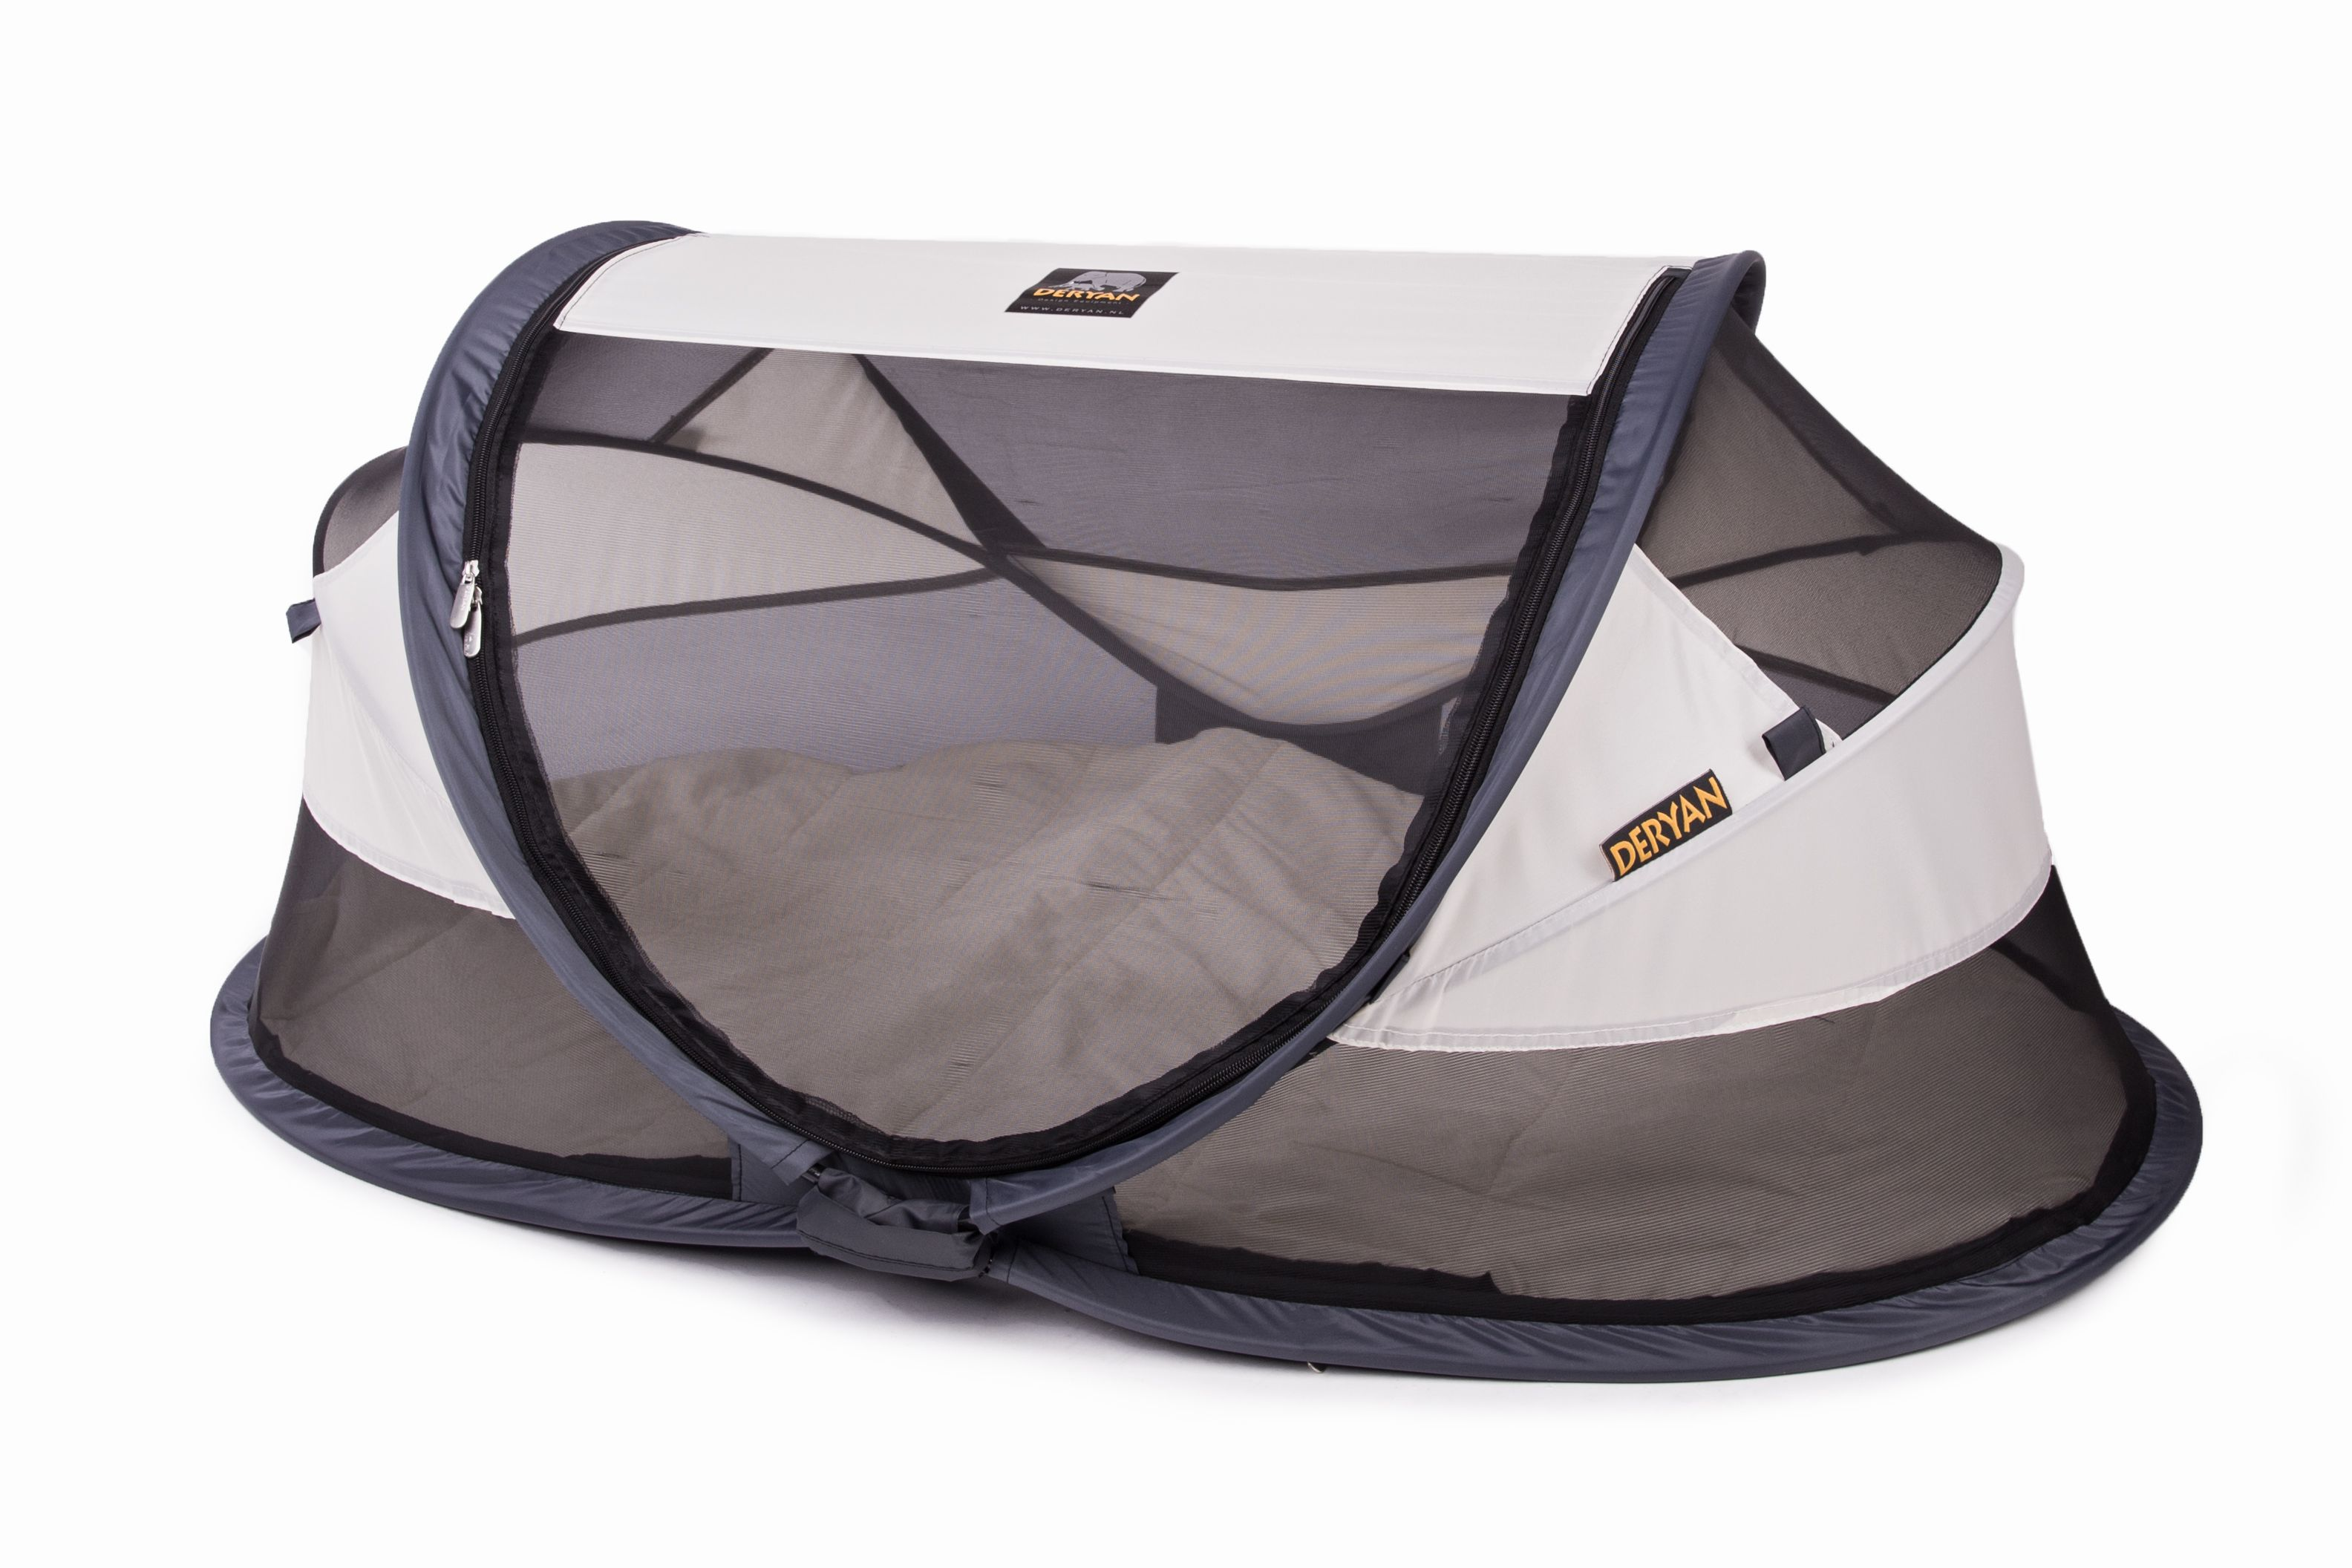 Image of Rejseseng fra Deryan - Travel Cot Baby Luxe - Cream (DETCBLCream)